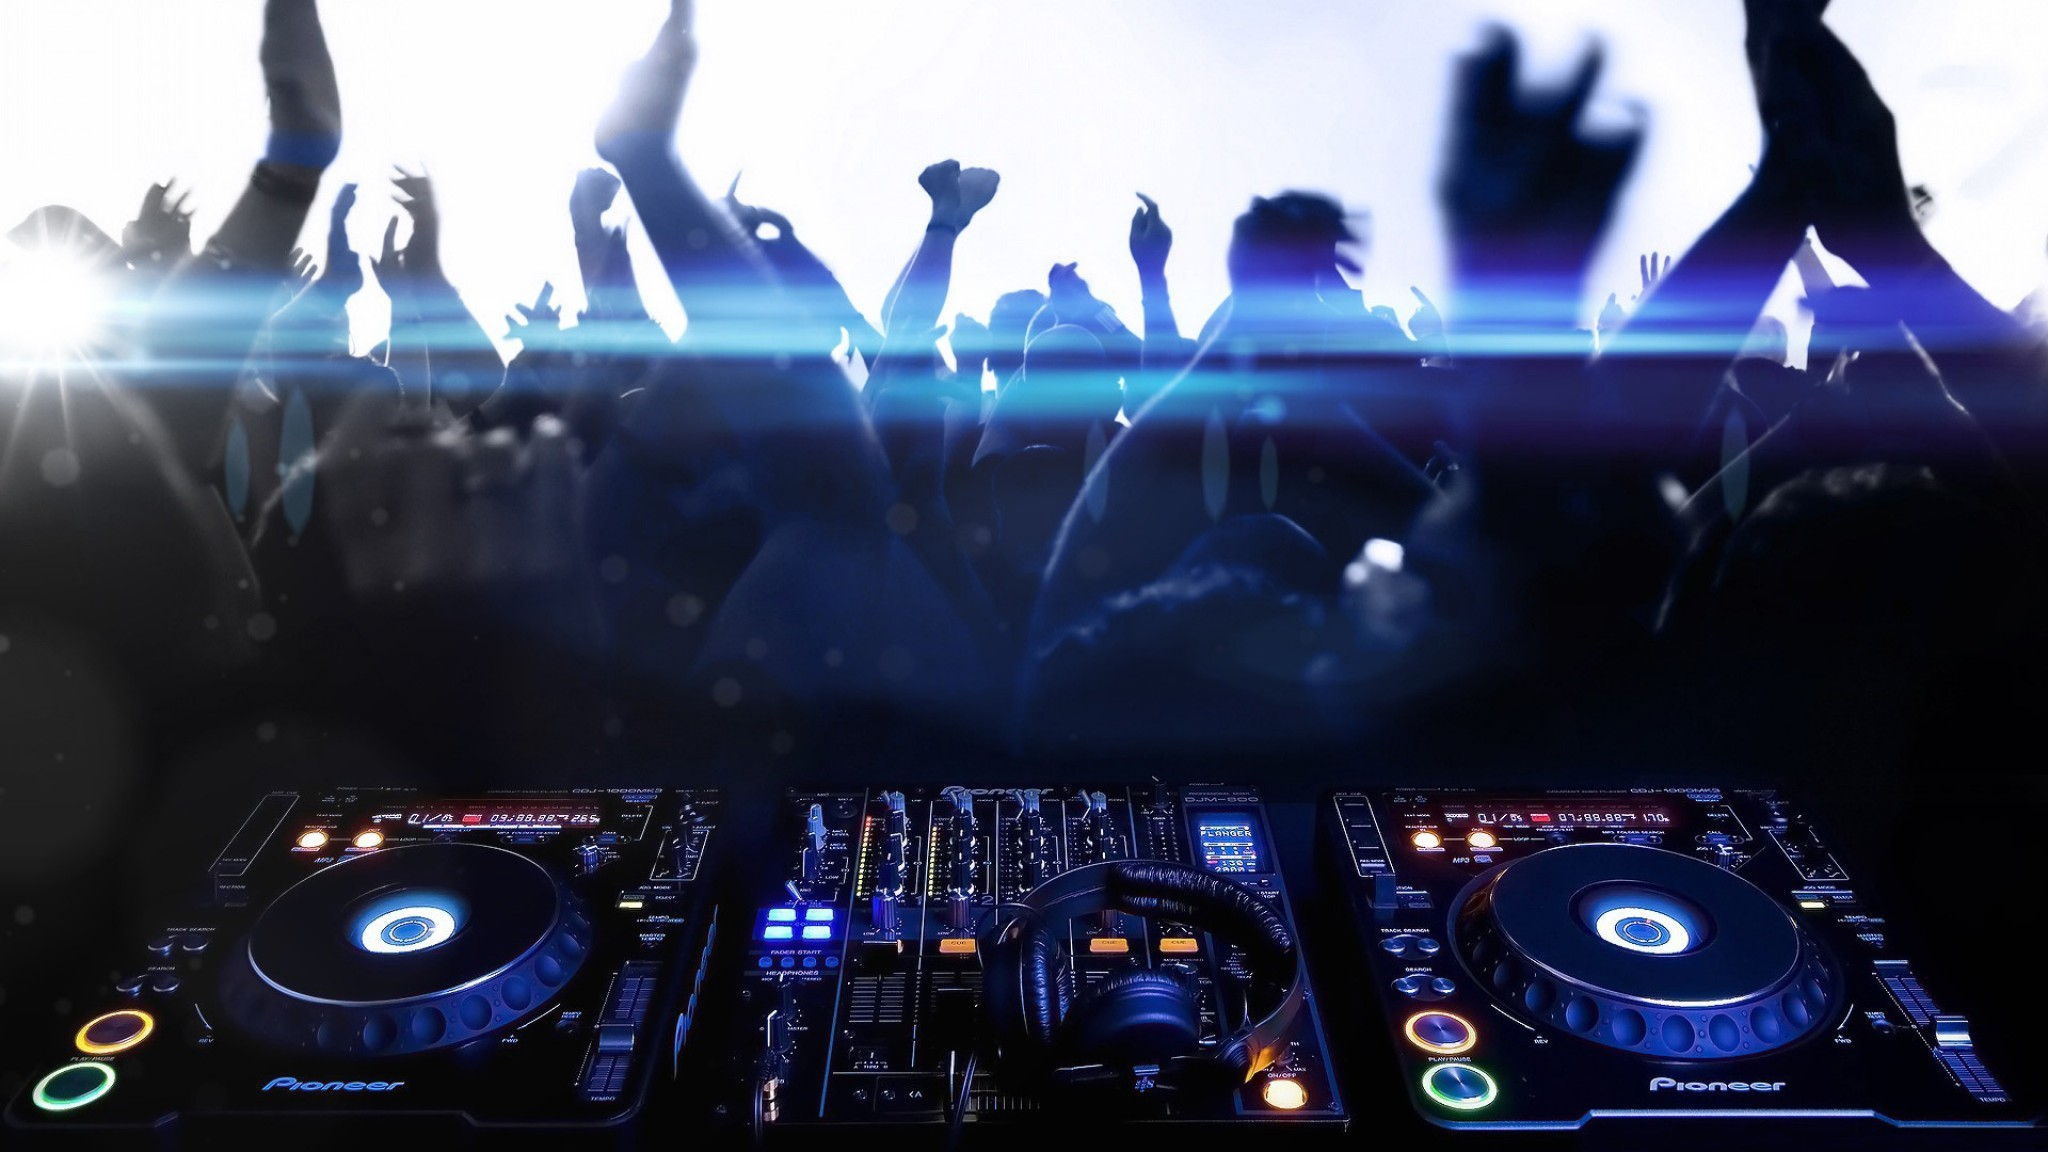 Music – DJ Music Headphones Dance Dancing People Wallpaper